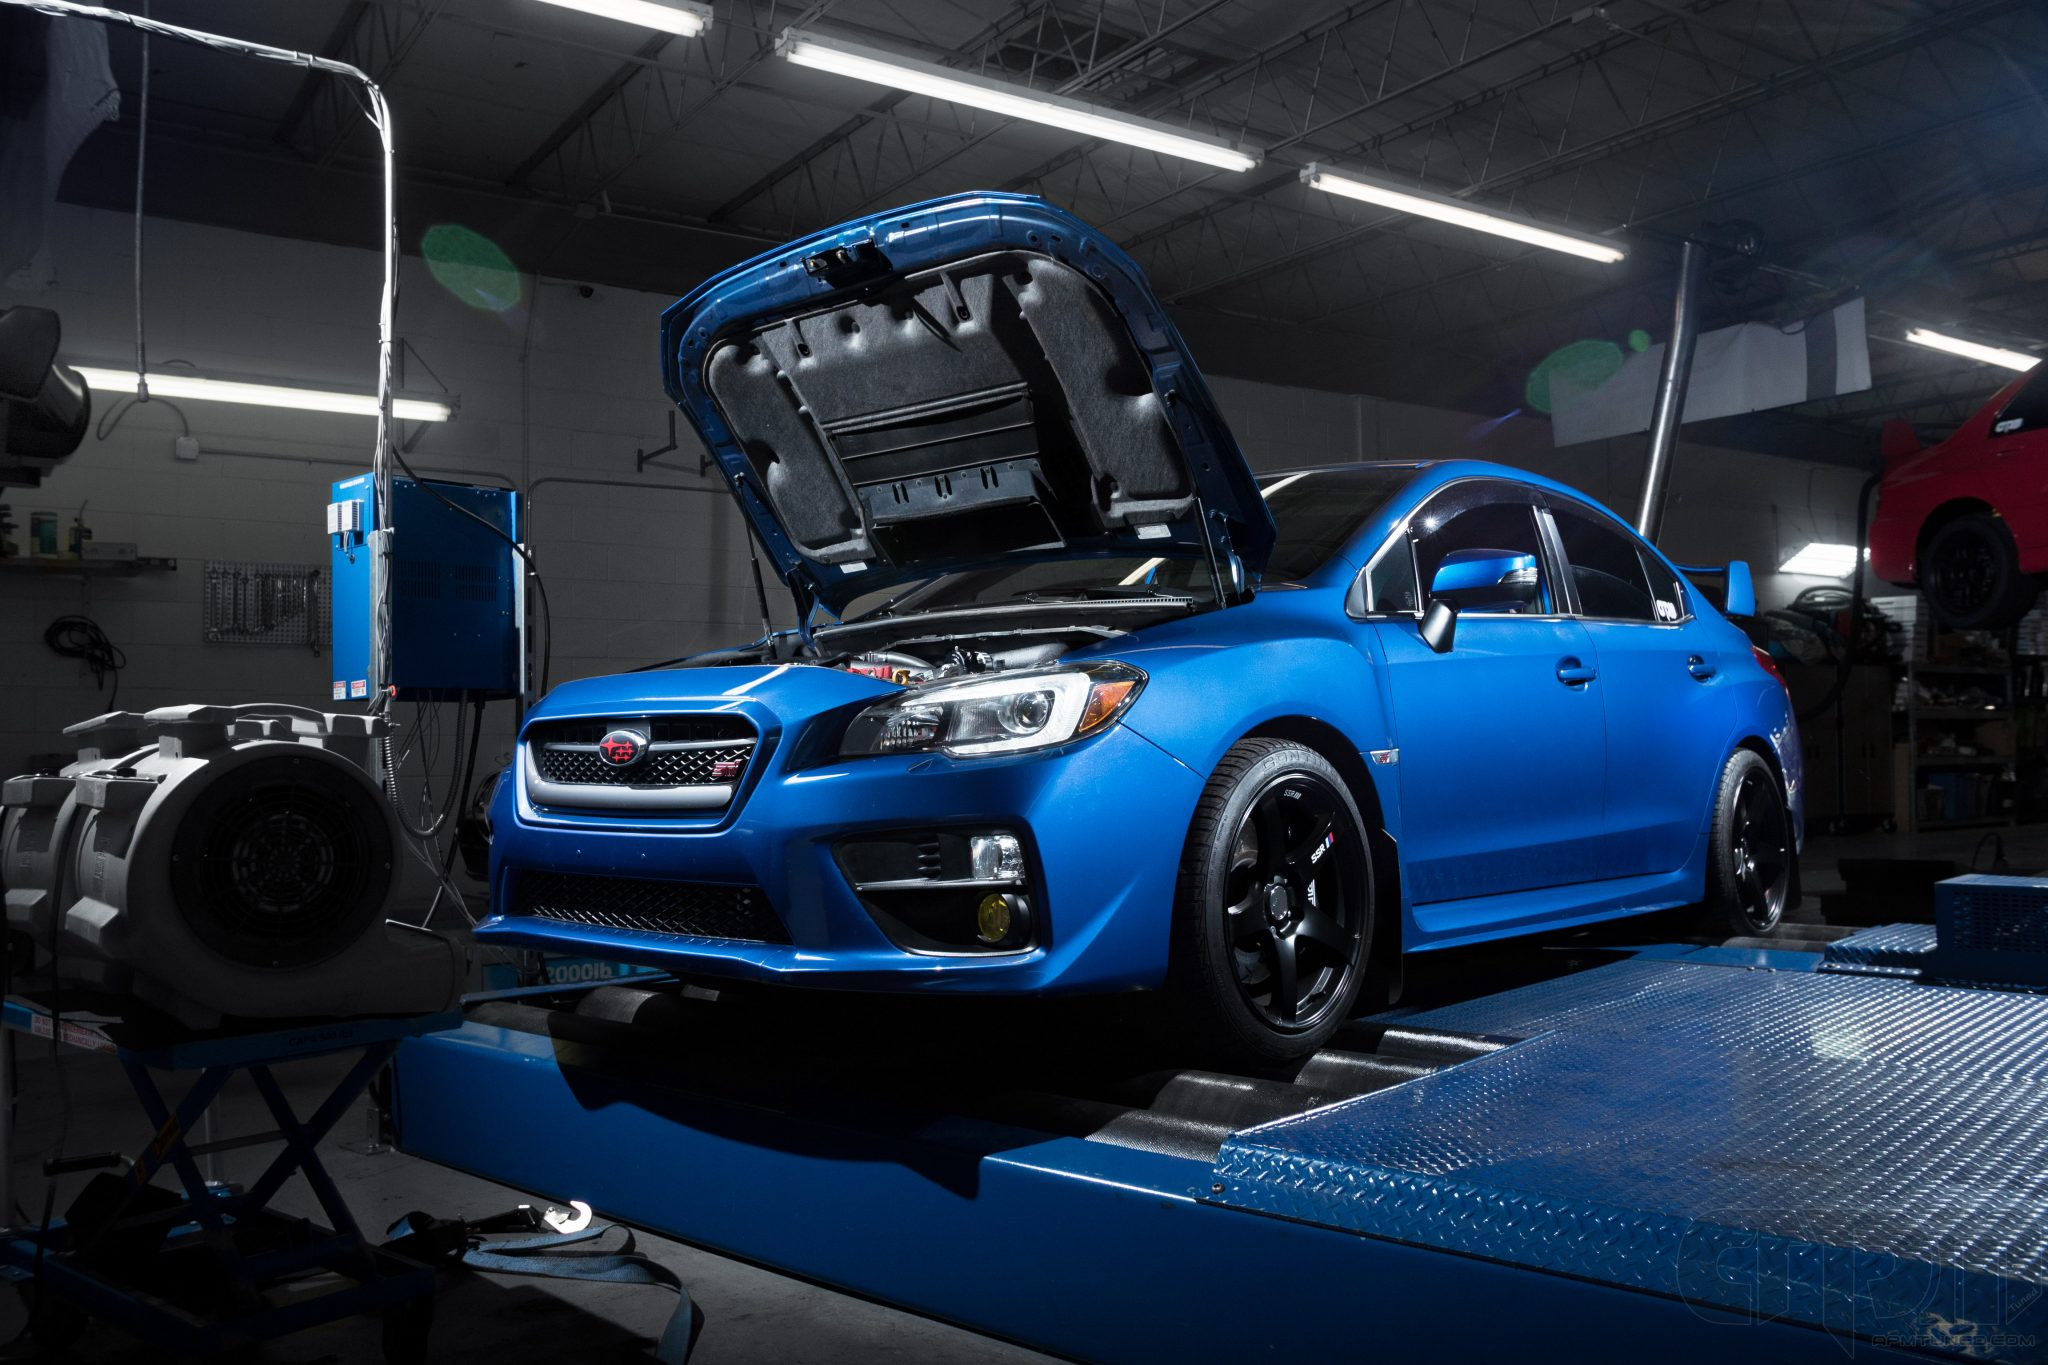 Dramatically lit Blue STI getting tuned on our Blue Nissan GT-R rolling while getting custom pro tuned on our Mustang AWD 4WD Dynamometer Dyno